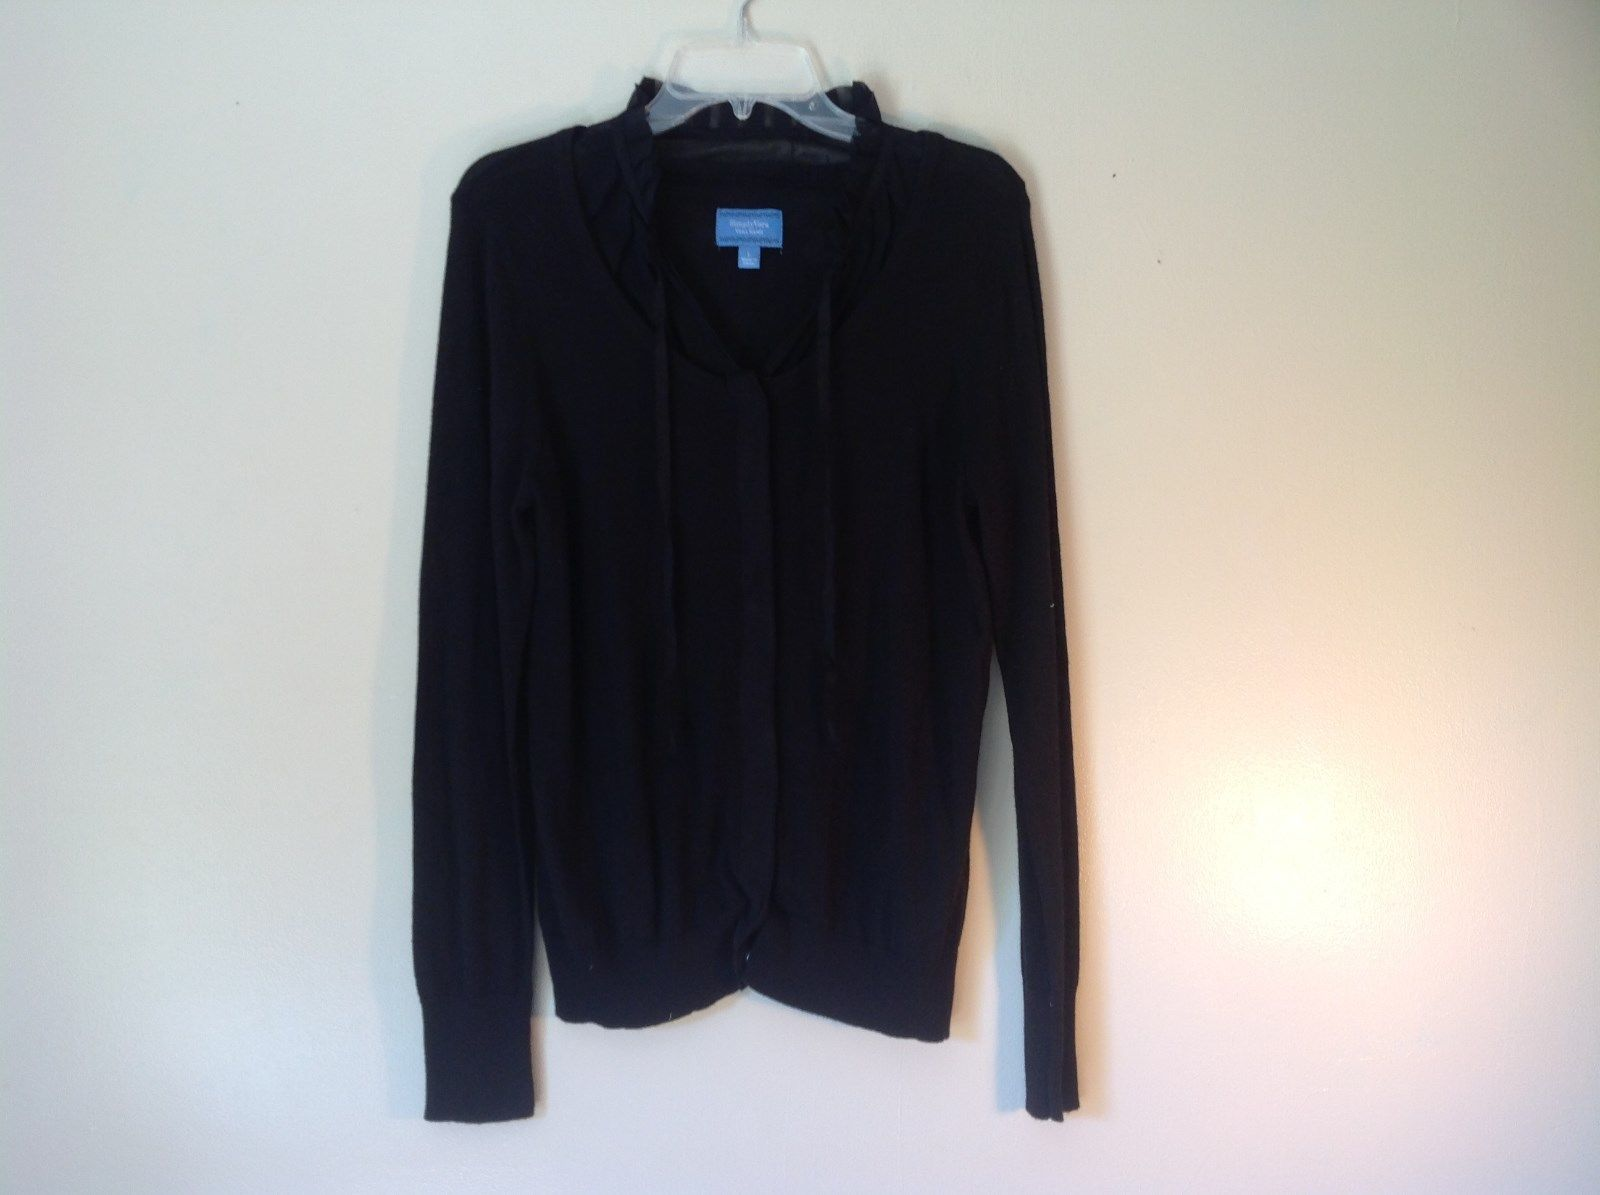 Black Long Sleeve Button Up Shirt Simply Vera Vera Wang Fancy Collar Size Large